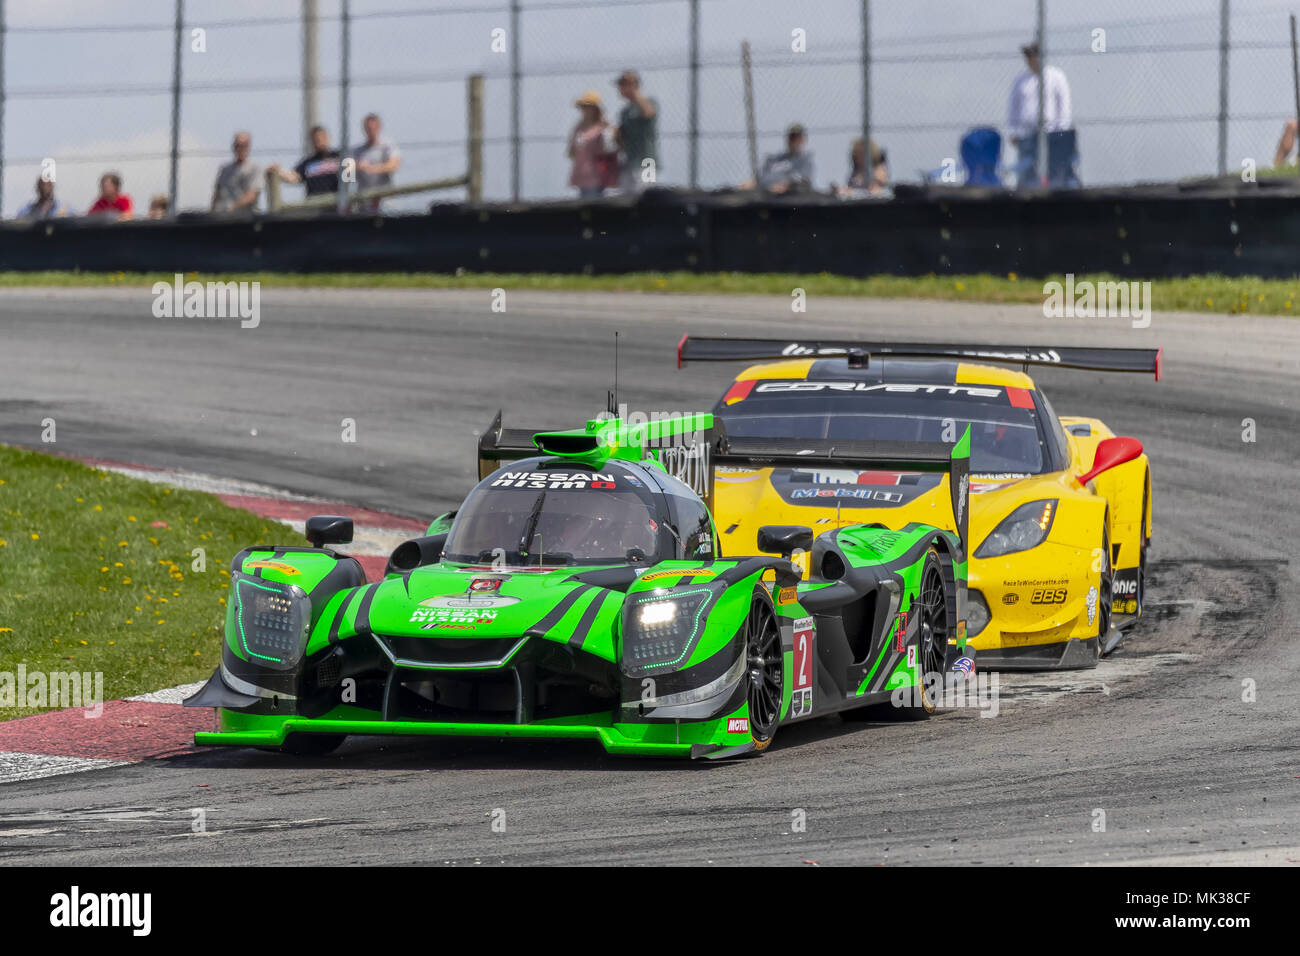 The Tequila Patron Nissan DPI Car Races Through The Keyhole Turn During The  The Acura Sports Car Challenge At Mid Ohio Sports Car Course In Lexington,  ...